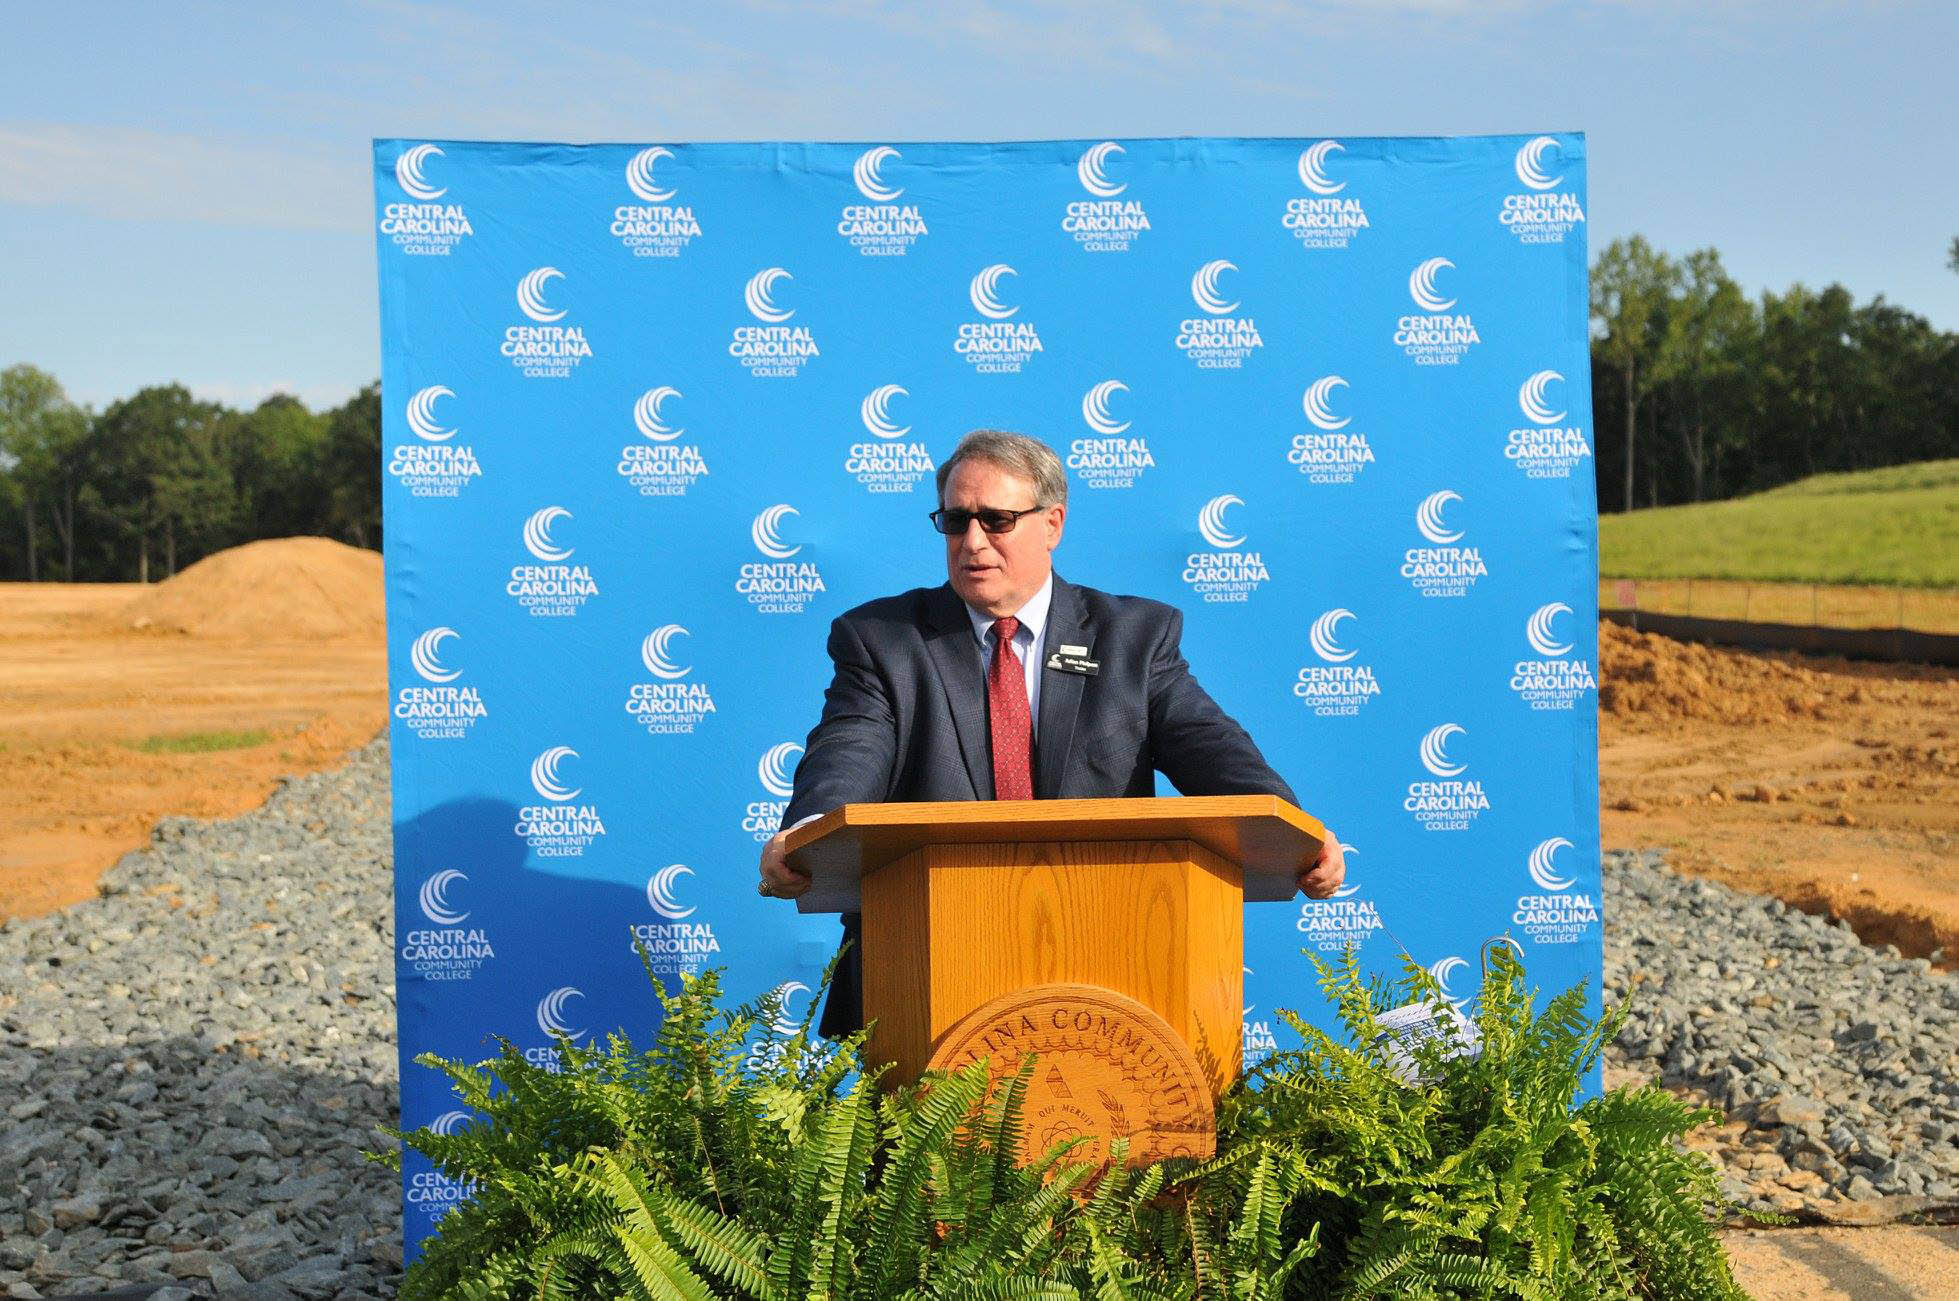 Click to enlarge,  Julian Philpott, Chairman of the Central Carolina Community College Board of Trustees, spoke to attendees at the college's Aug. 22 groundbreaking ceremony for the new Chatham Health Sciences Center.